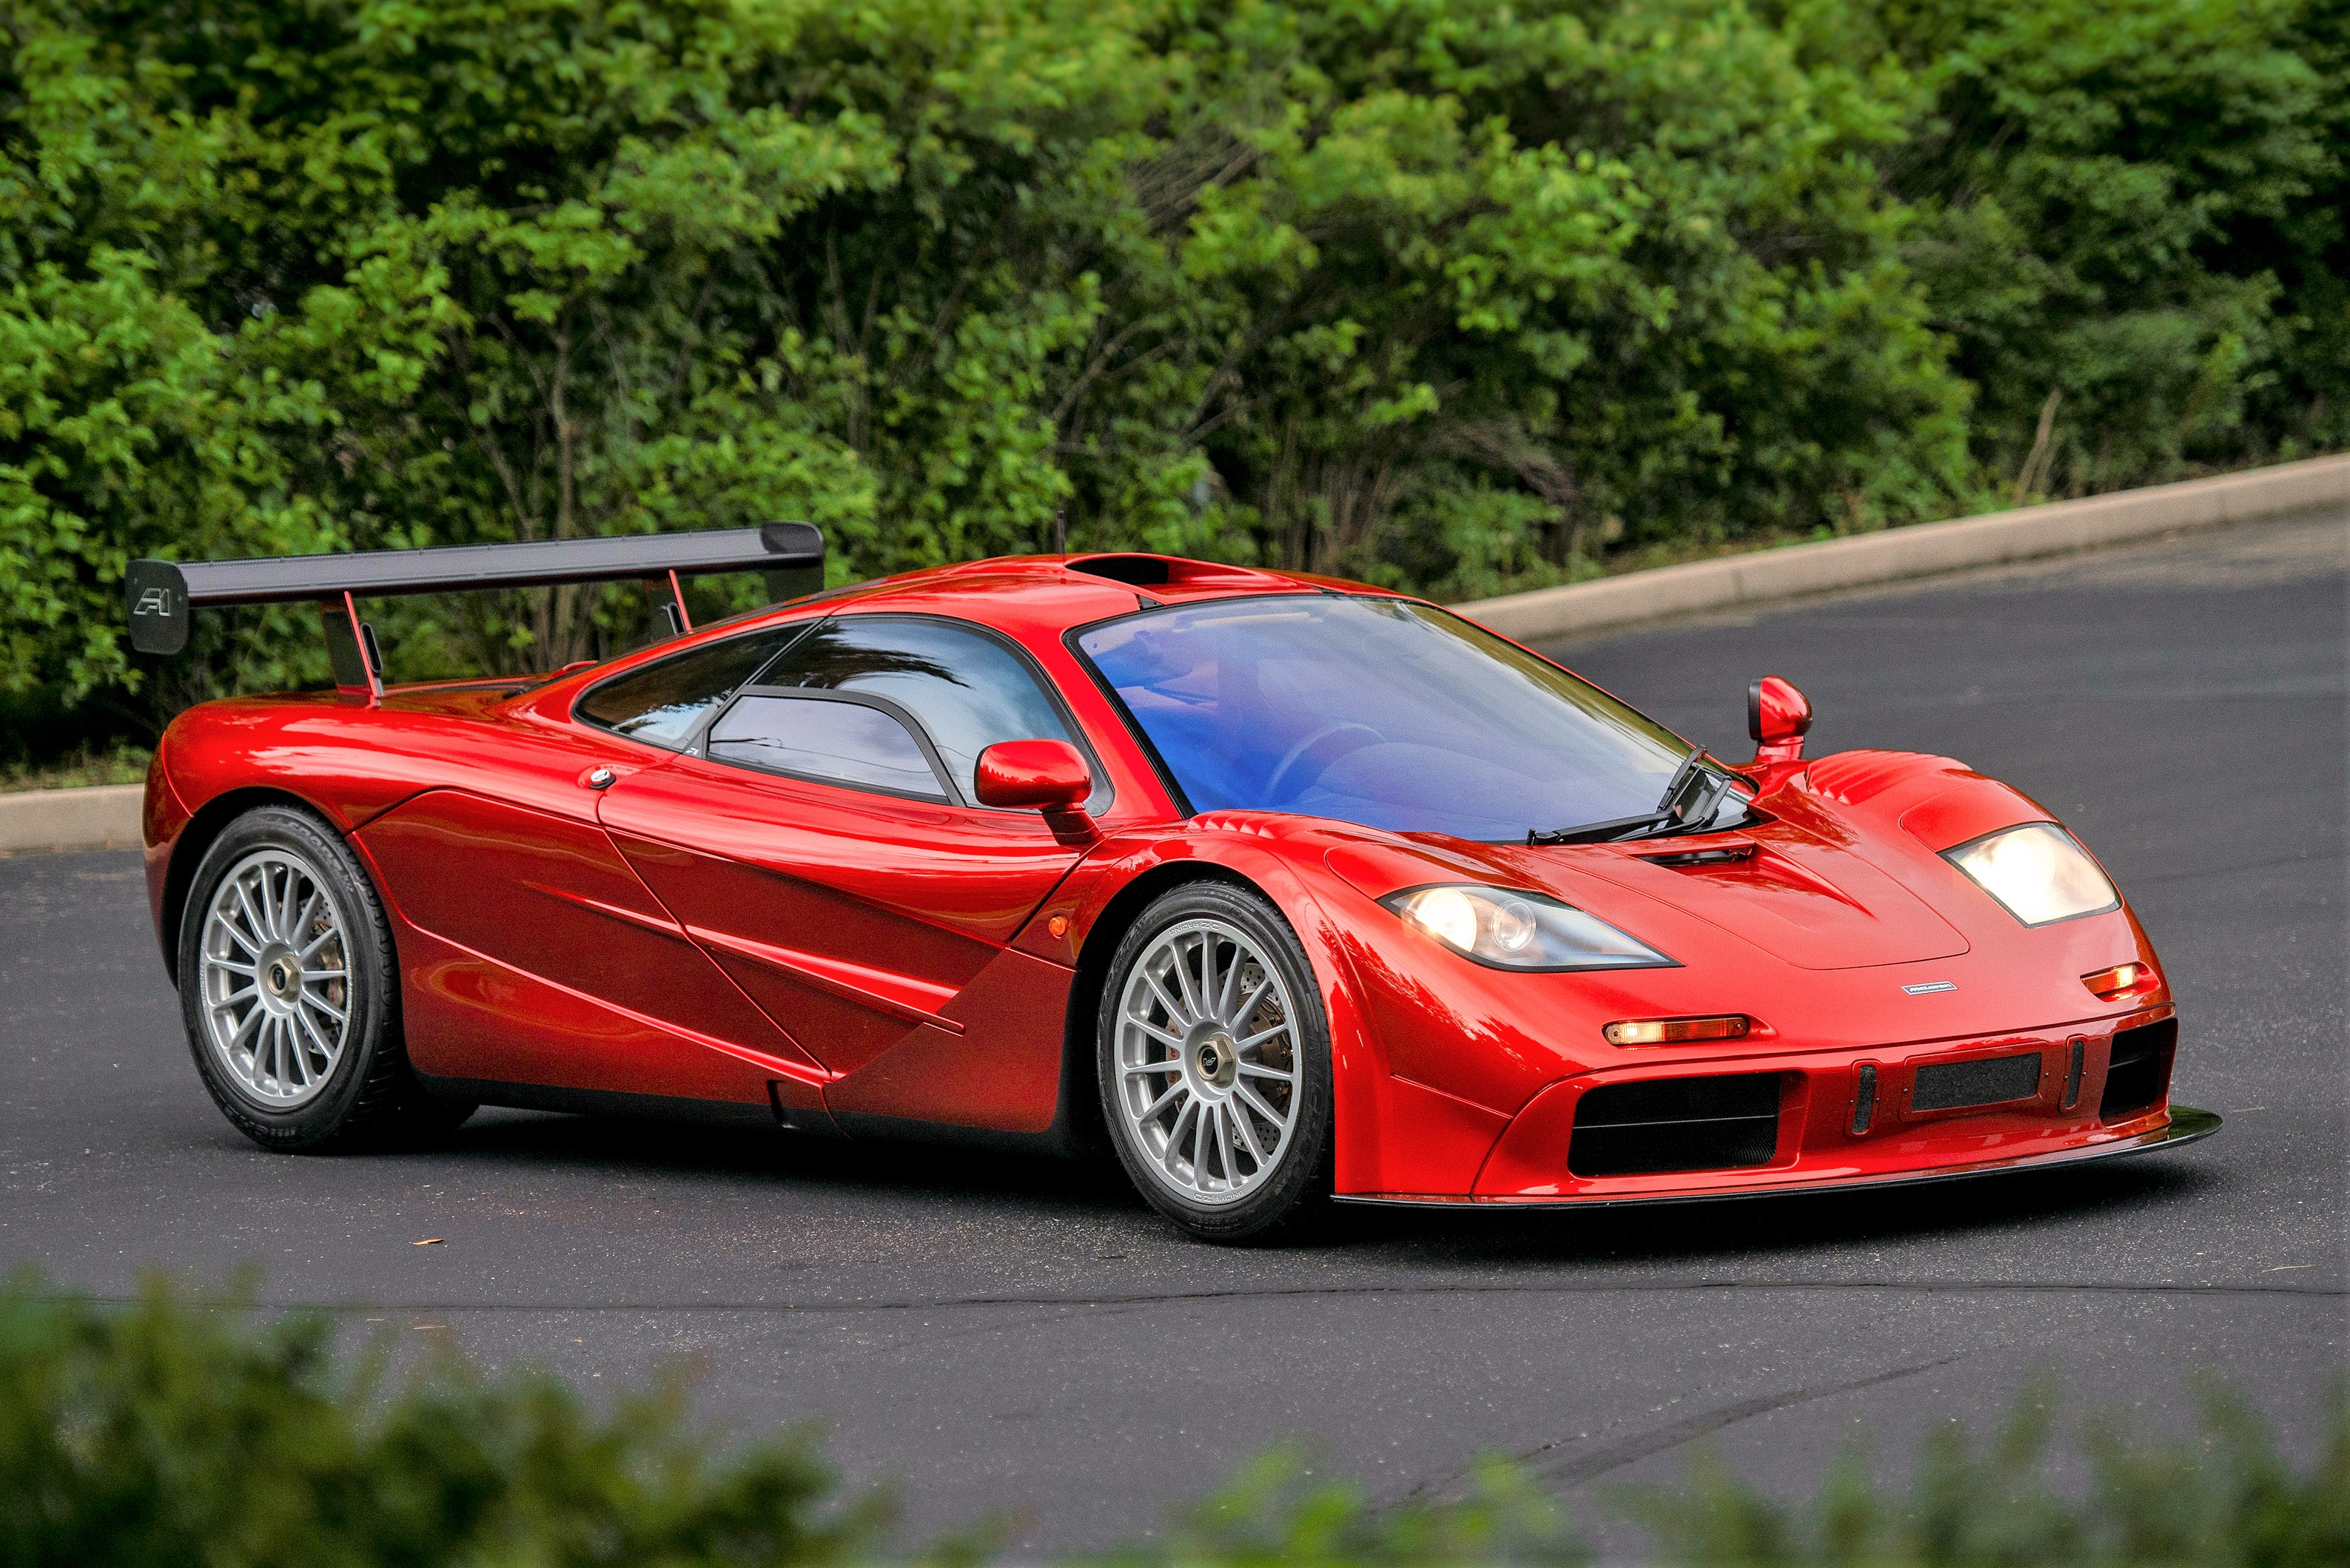 This 1998 McLaren F1 LM Specification is the first Private Sales offering | RM Sotheby's photos